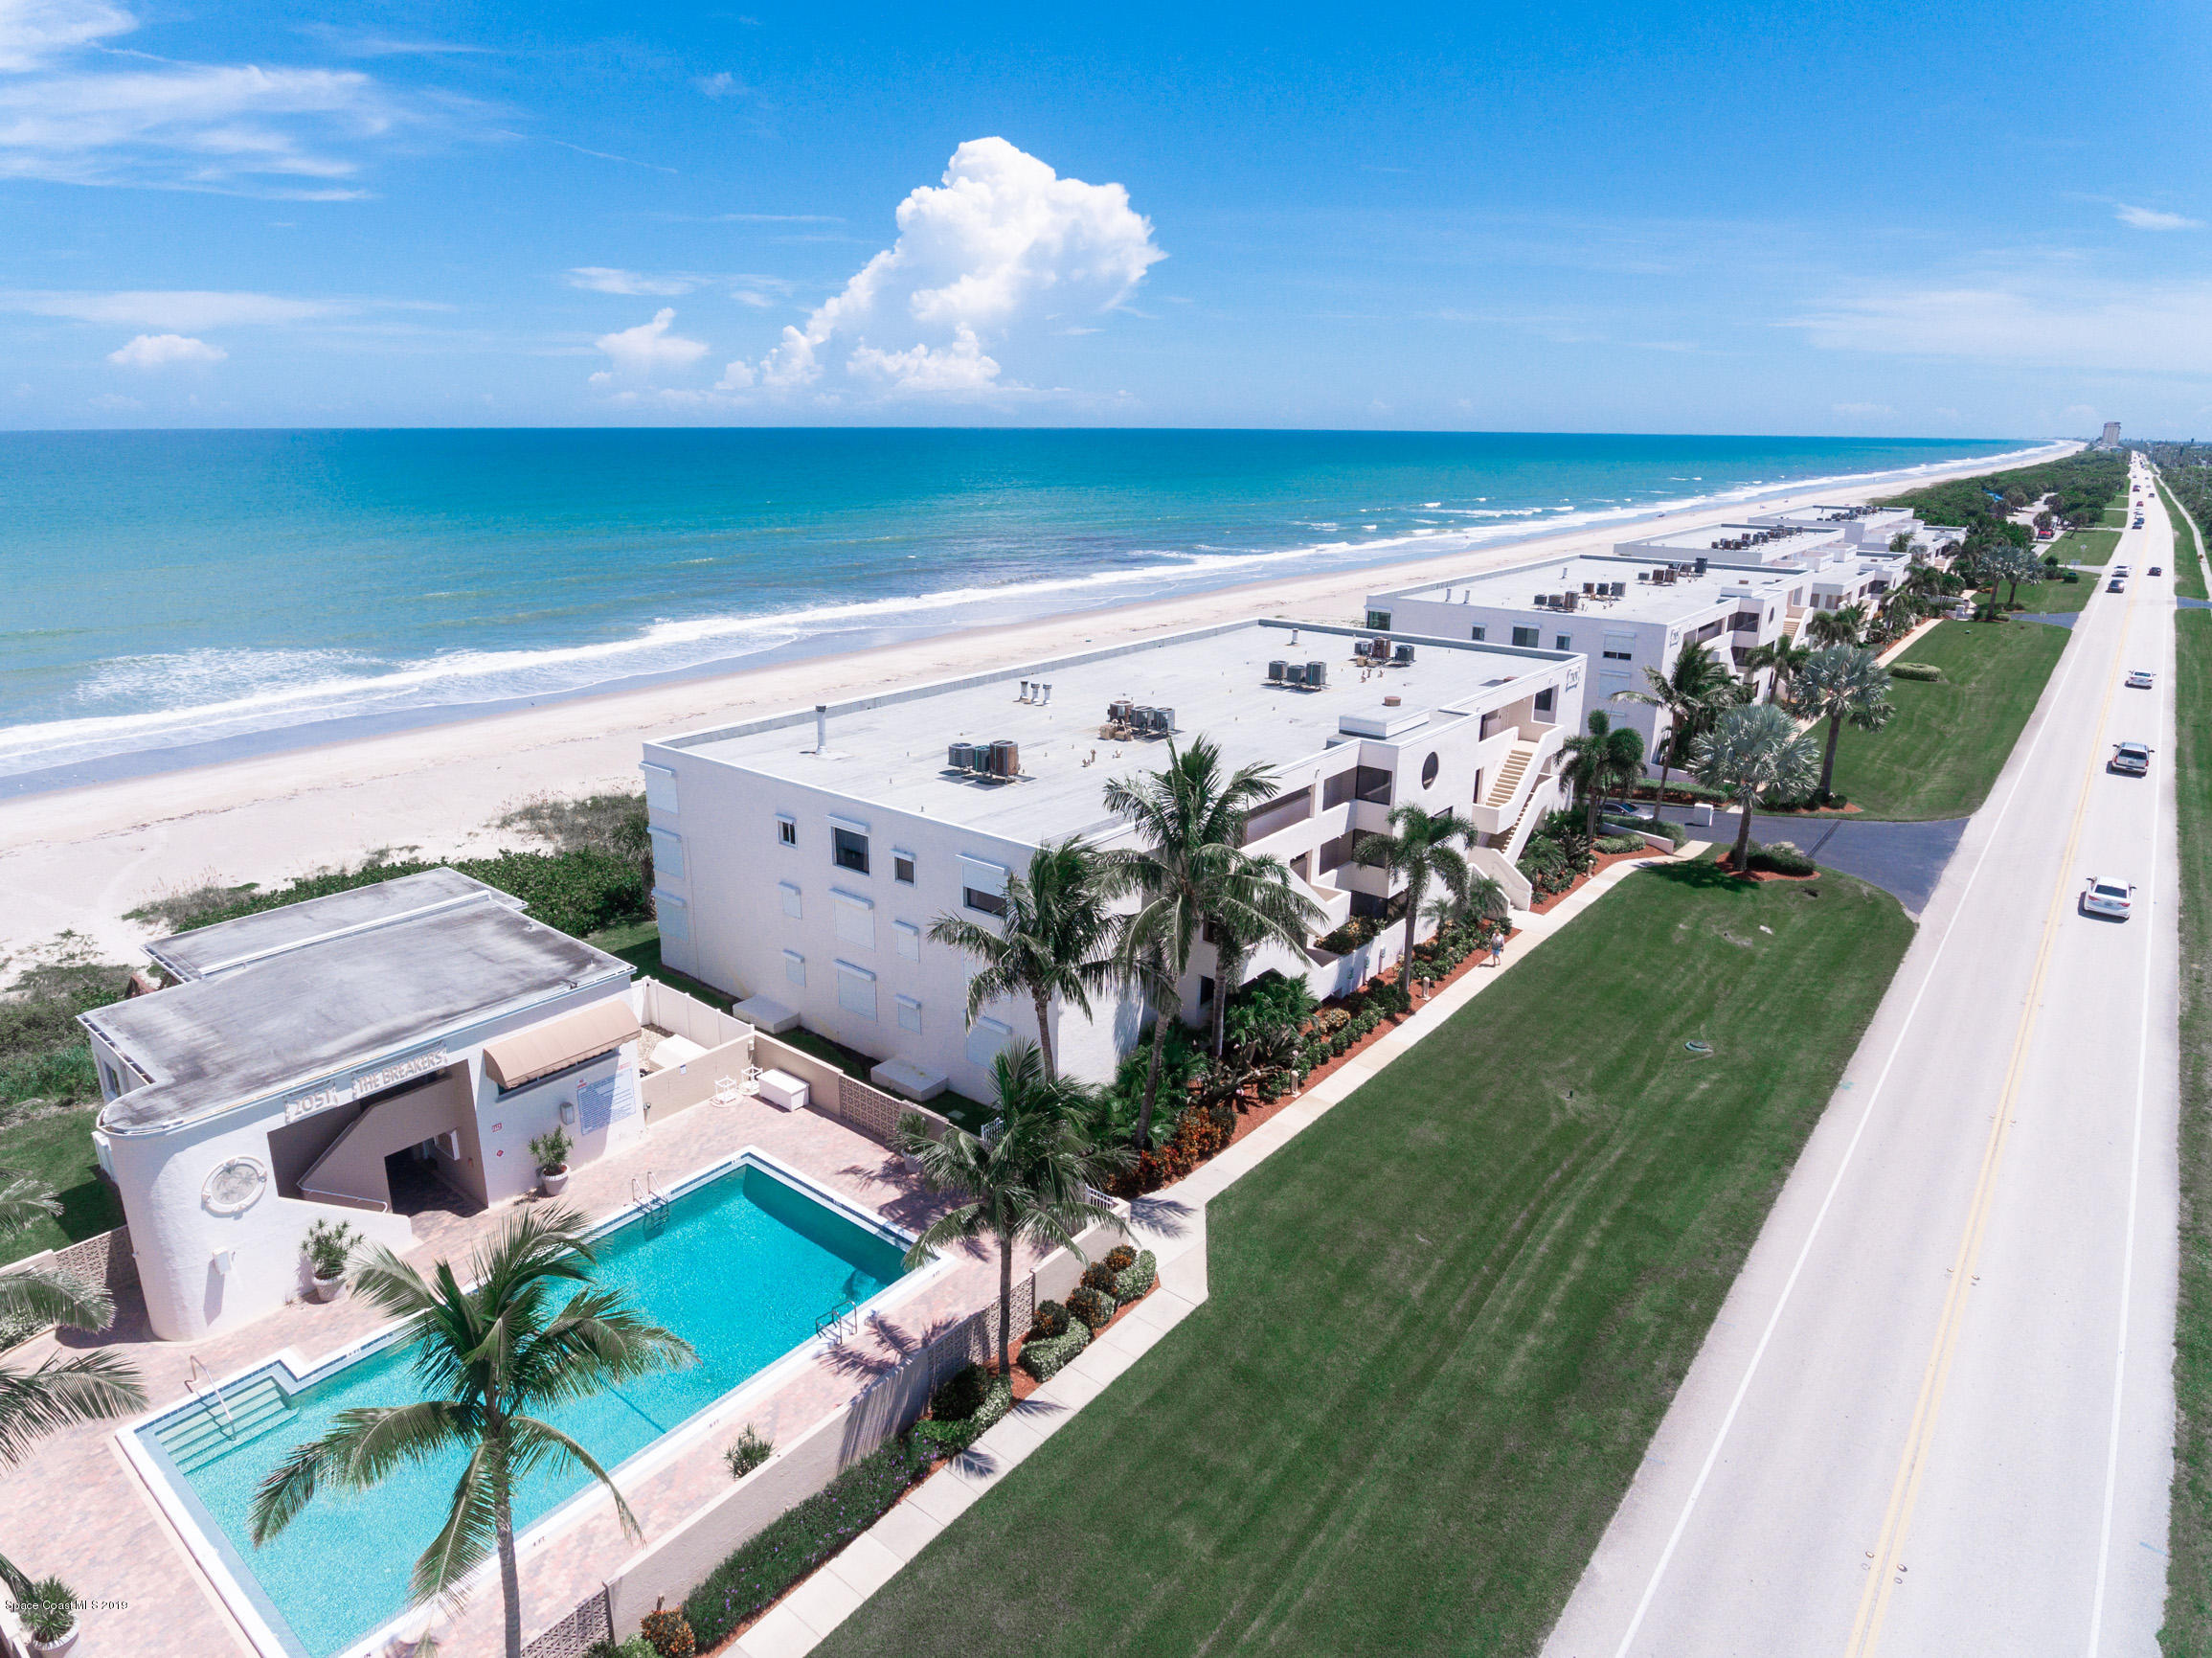 Single Family Homes for Sale at 2101 Atlantic Melbourne Beach, Florida 32951 United States